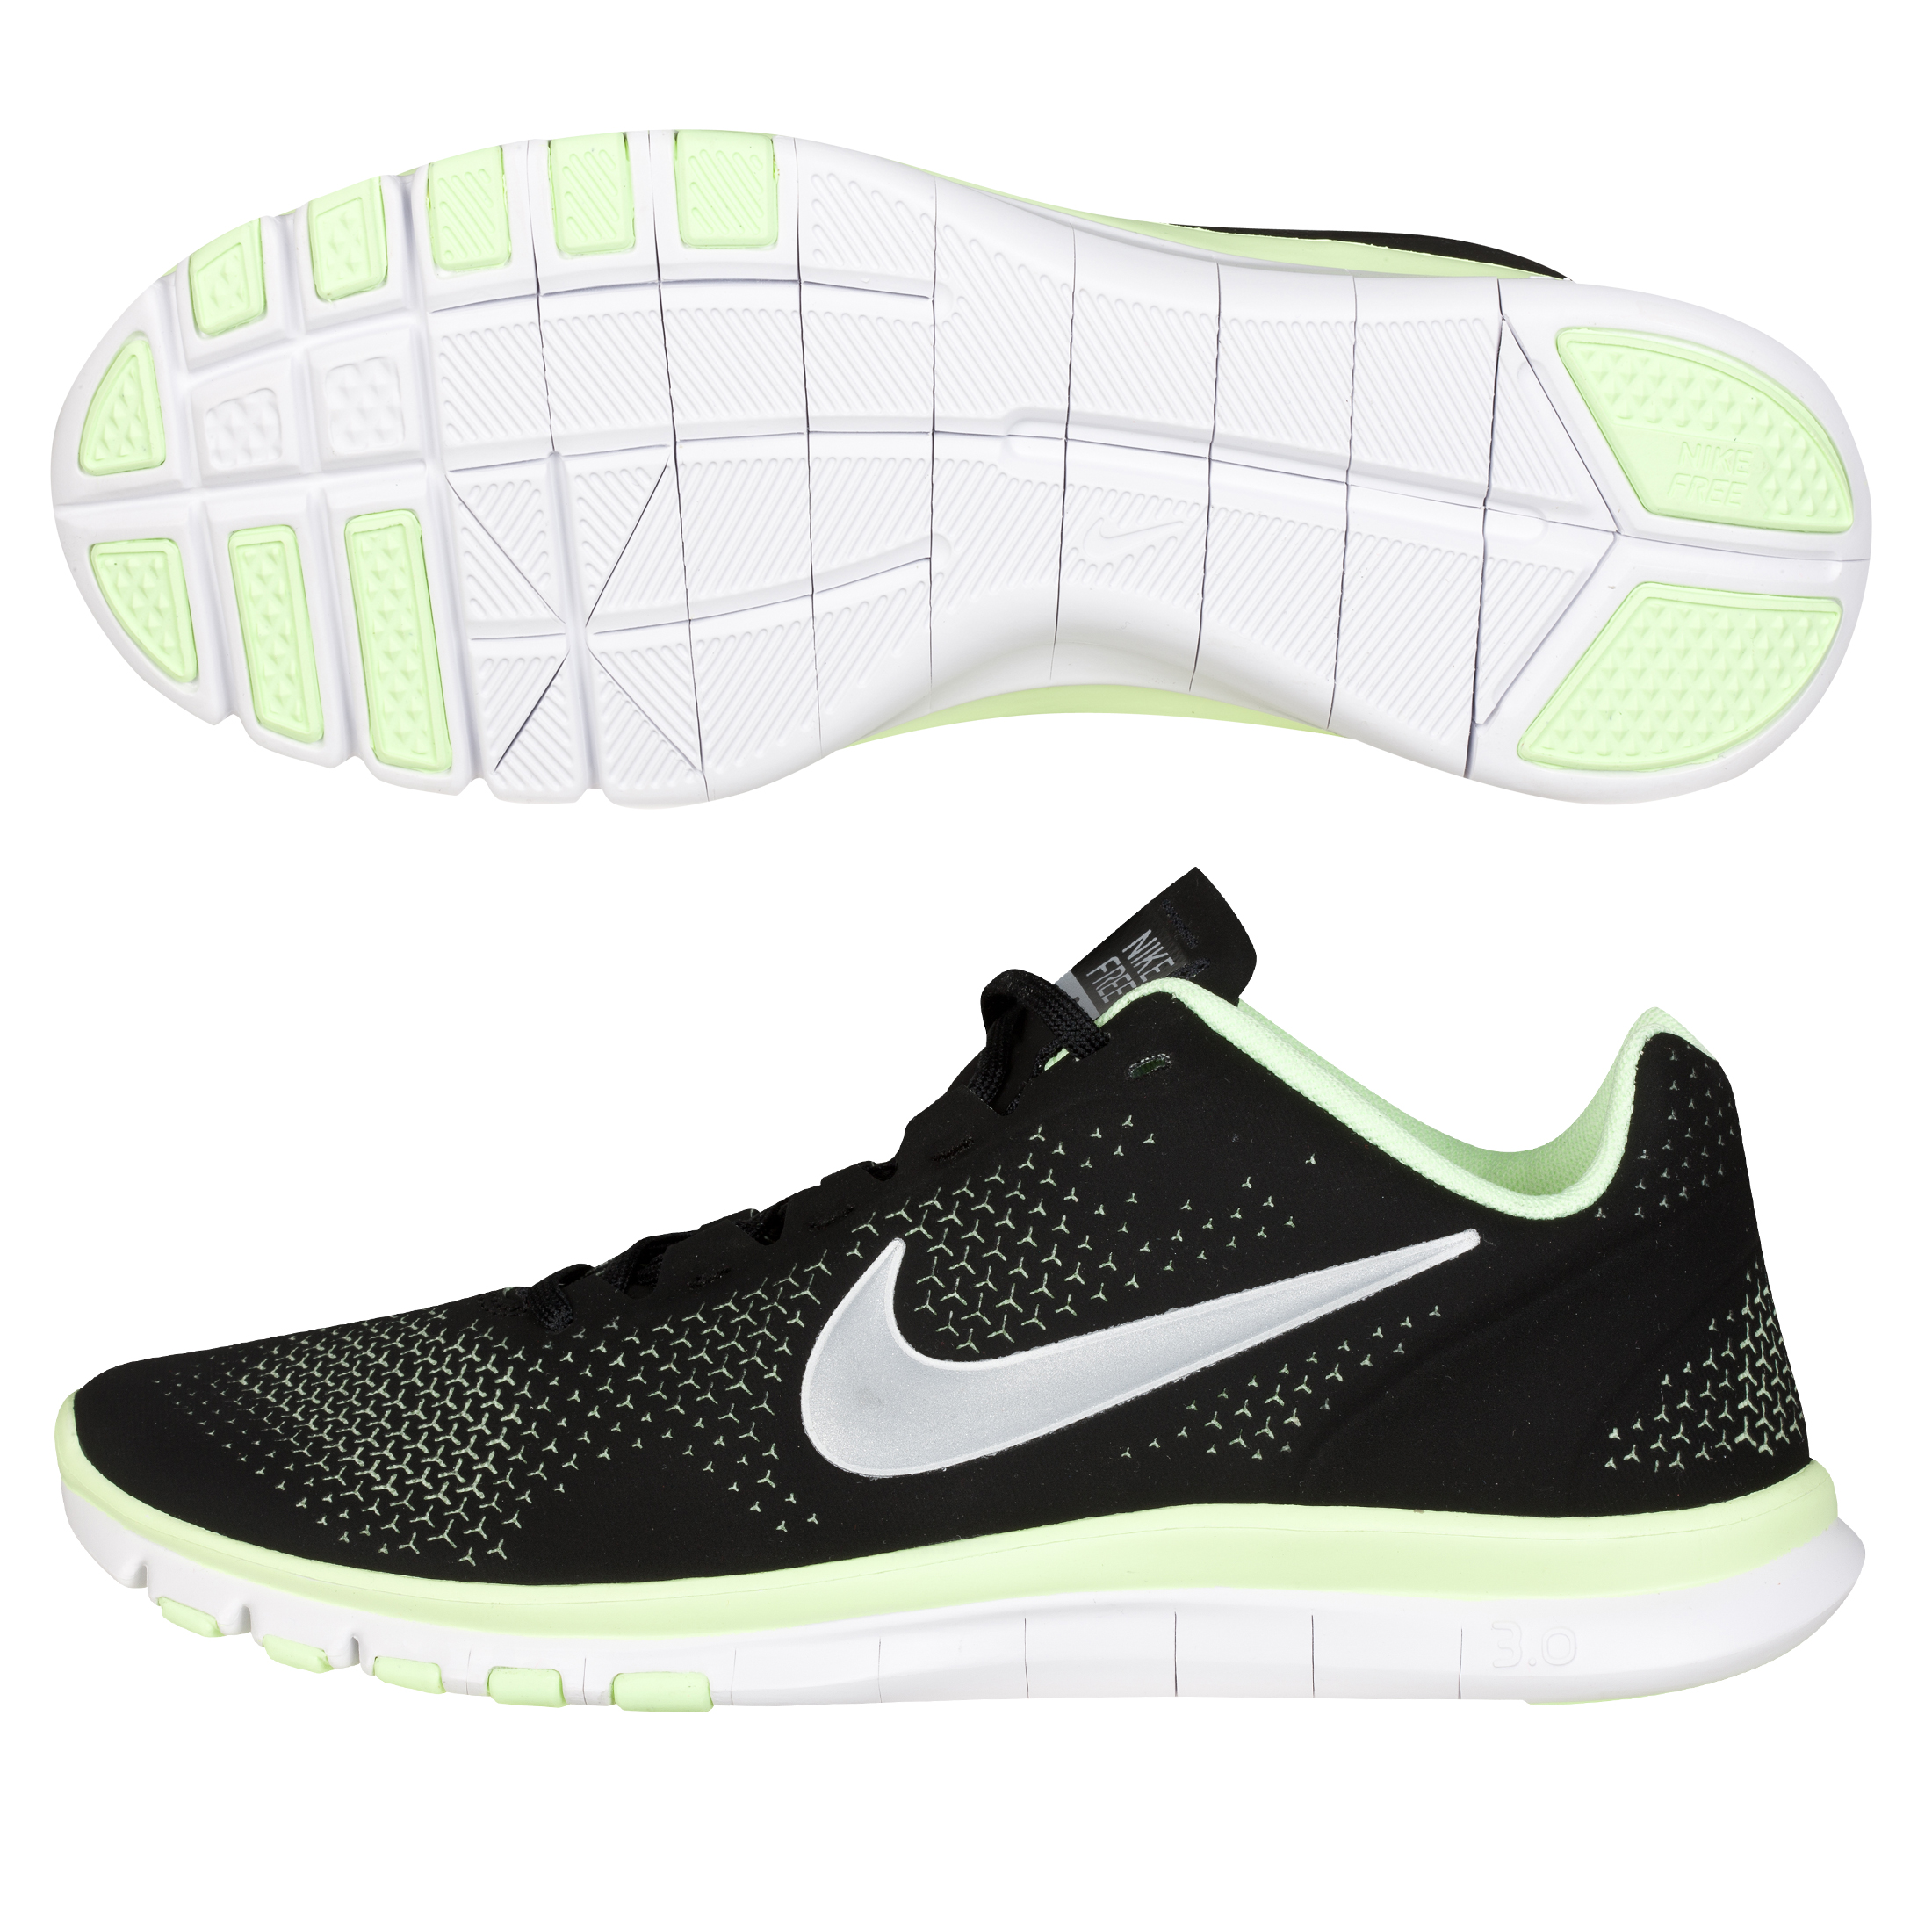 Nike Free Advantage - Black/Metallic Silver - Womens